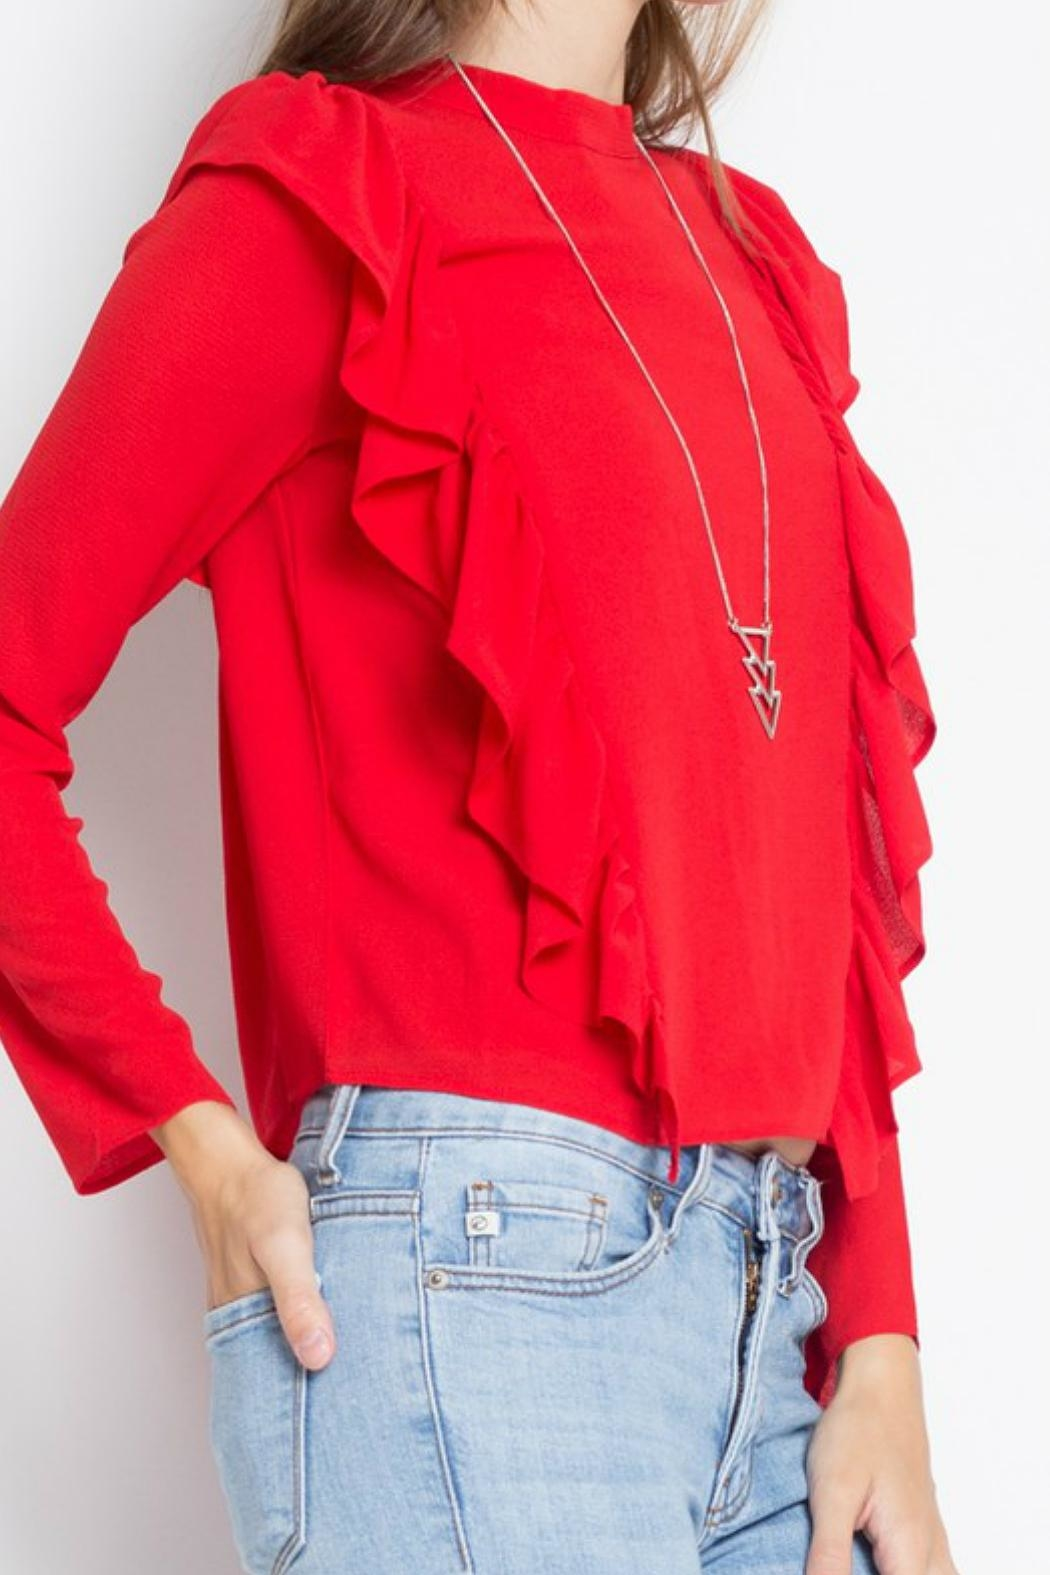 Minx Red Ruffle Blouse - Front Full Image